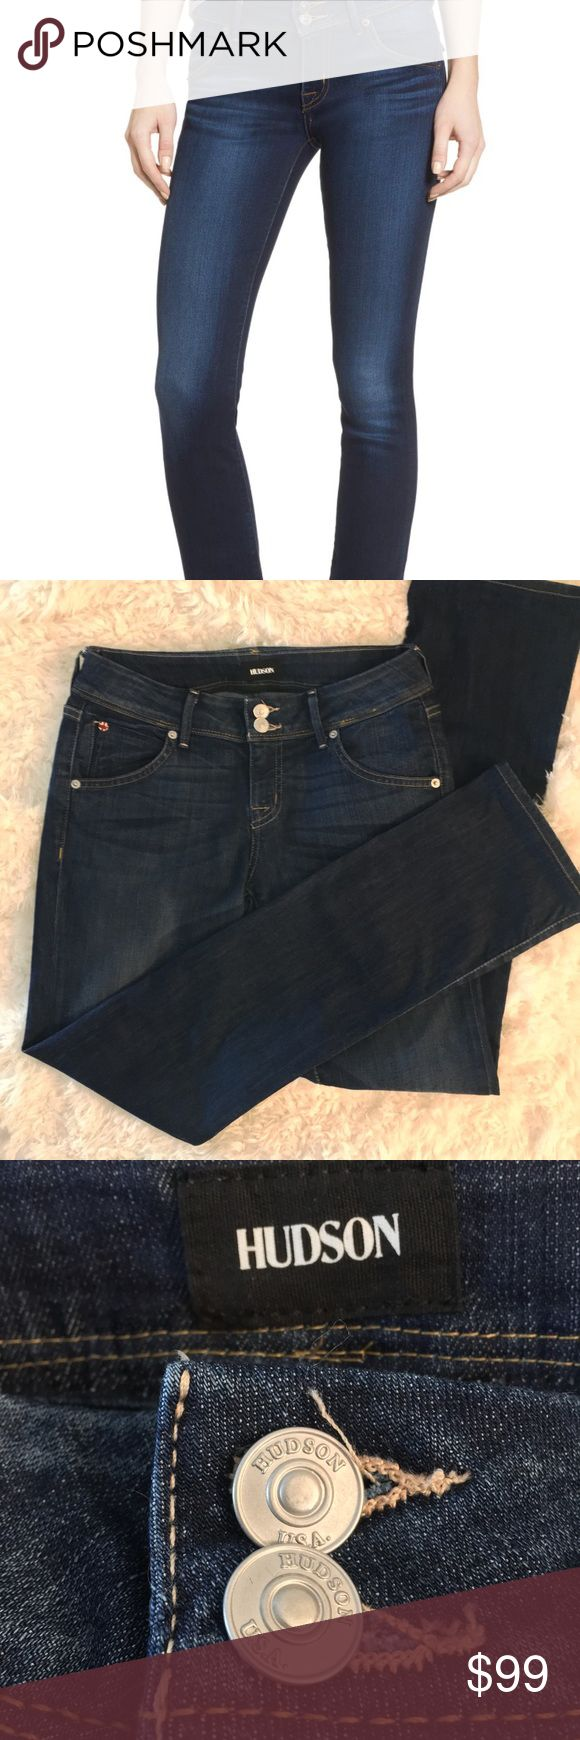 BNWOT HUDSON Beth Baby Bootcut In Kern Wash Sz 28 Absolutely FLAWLESS Purchased from Nordstrom, forgot to get them Tailored this winter so now they're for sale! Never worn and ready to go Hudson Jeans Jeans